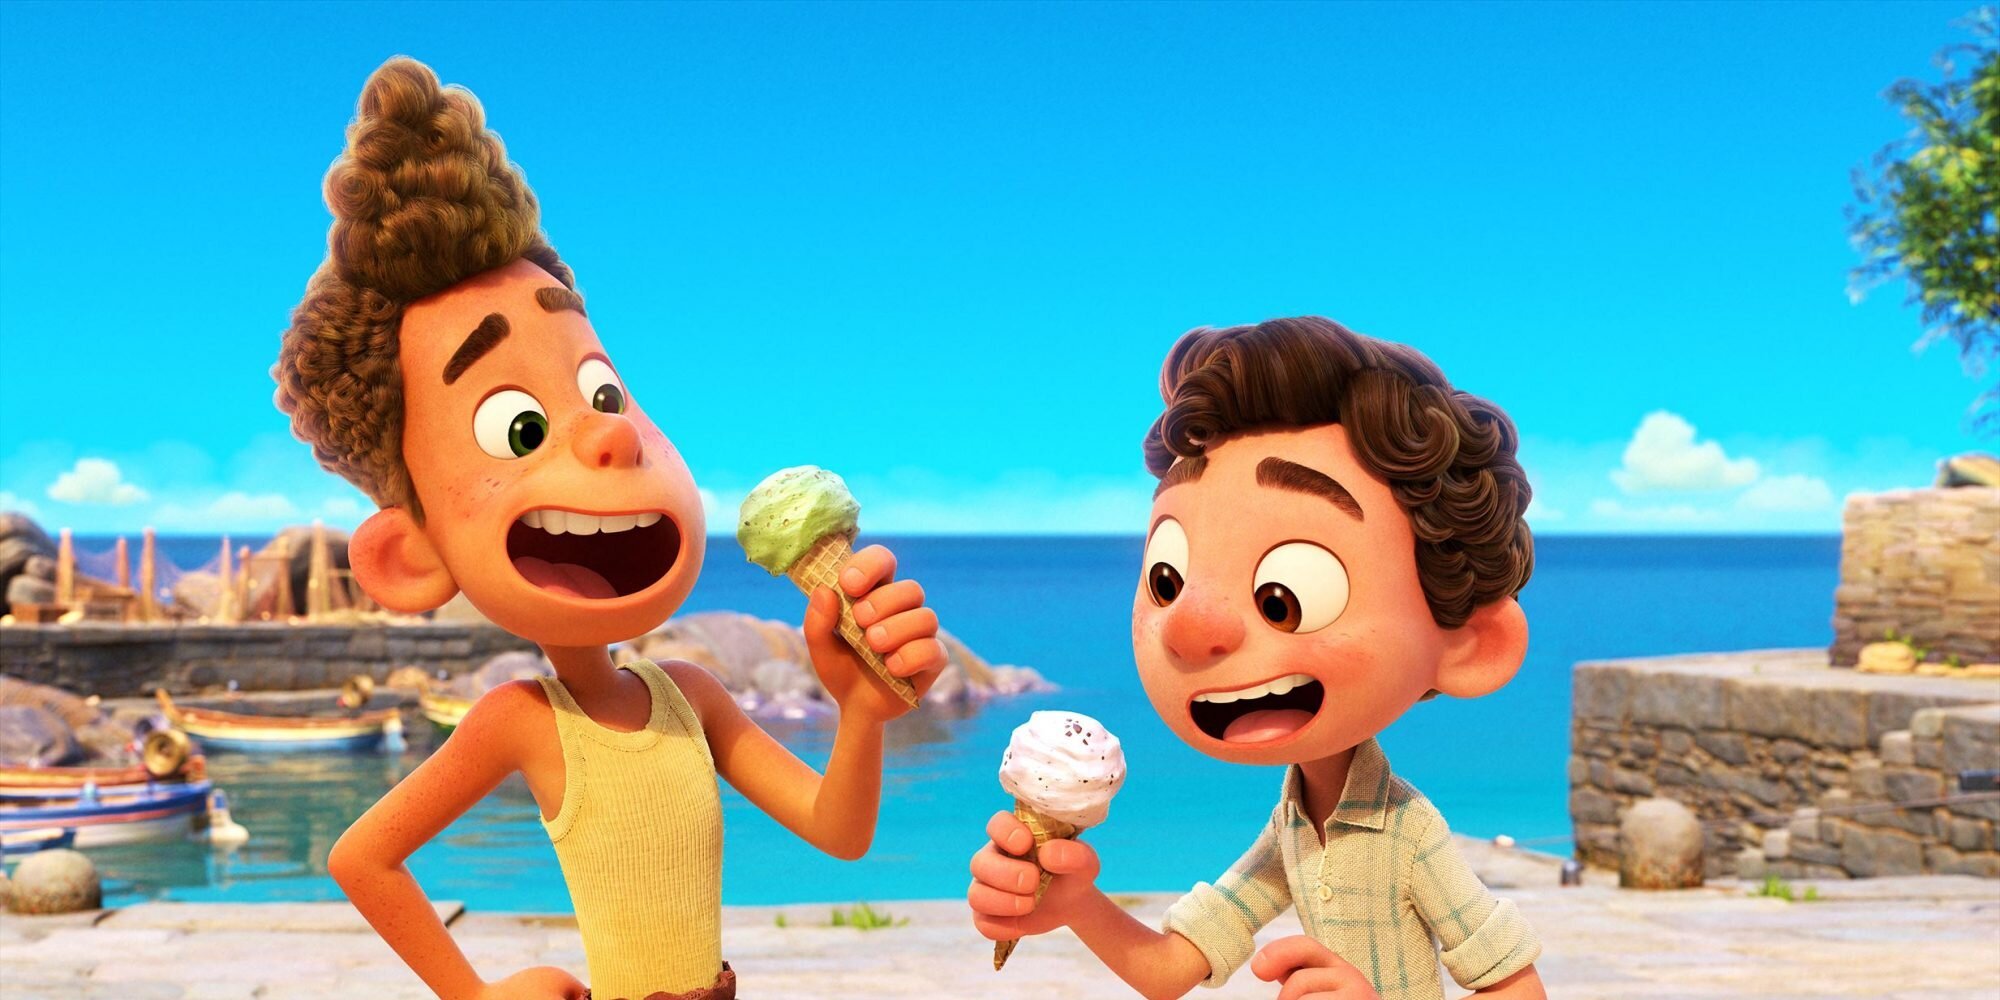 Pixar reveals new look at Luca with a sun-kissed poster.jpg